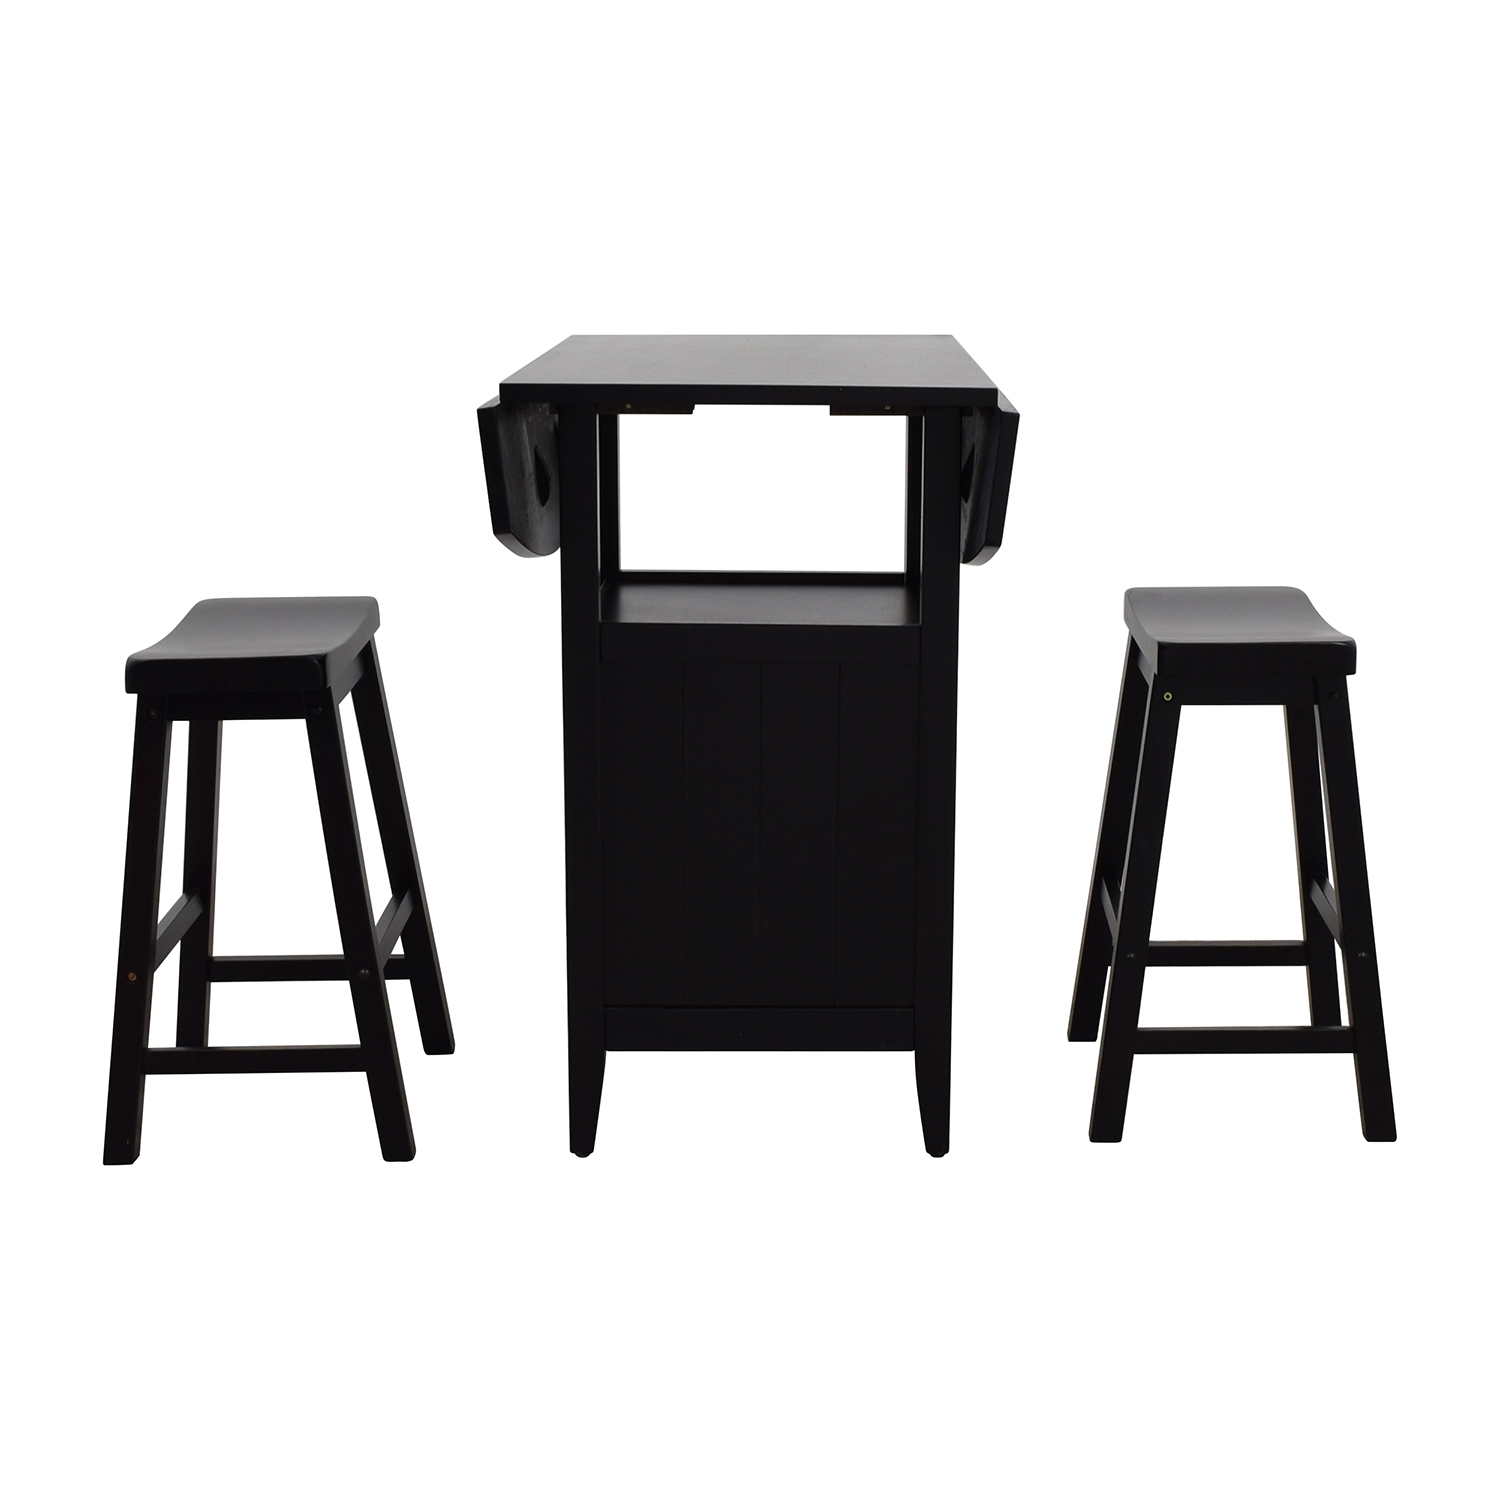 Dinette Wood Table with Storage with Two Stools / Dinner Tables